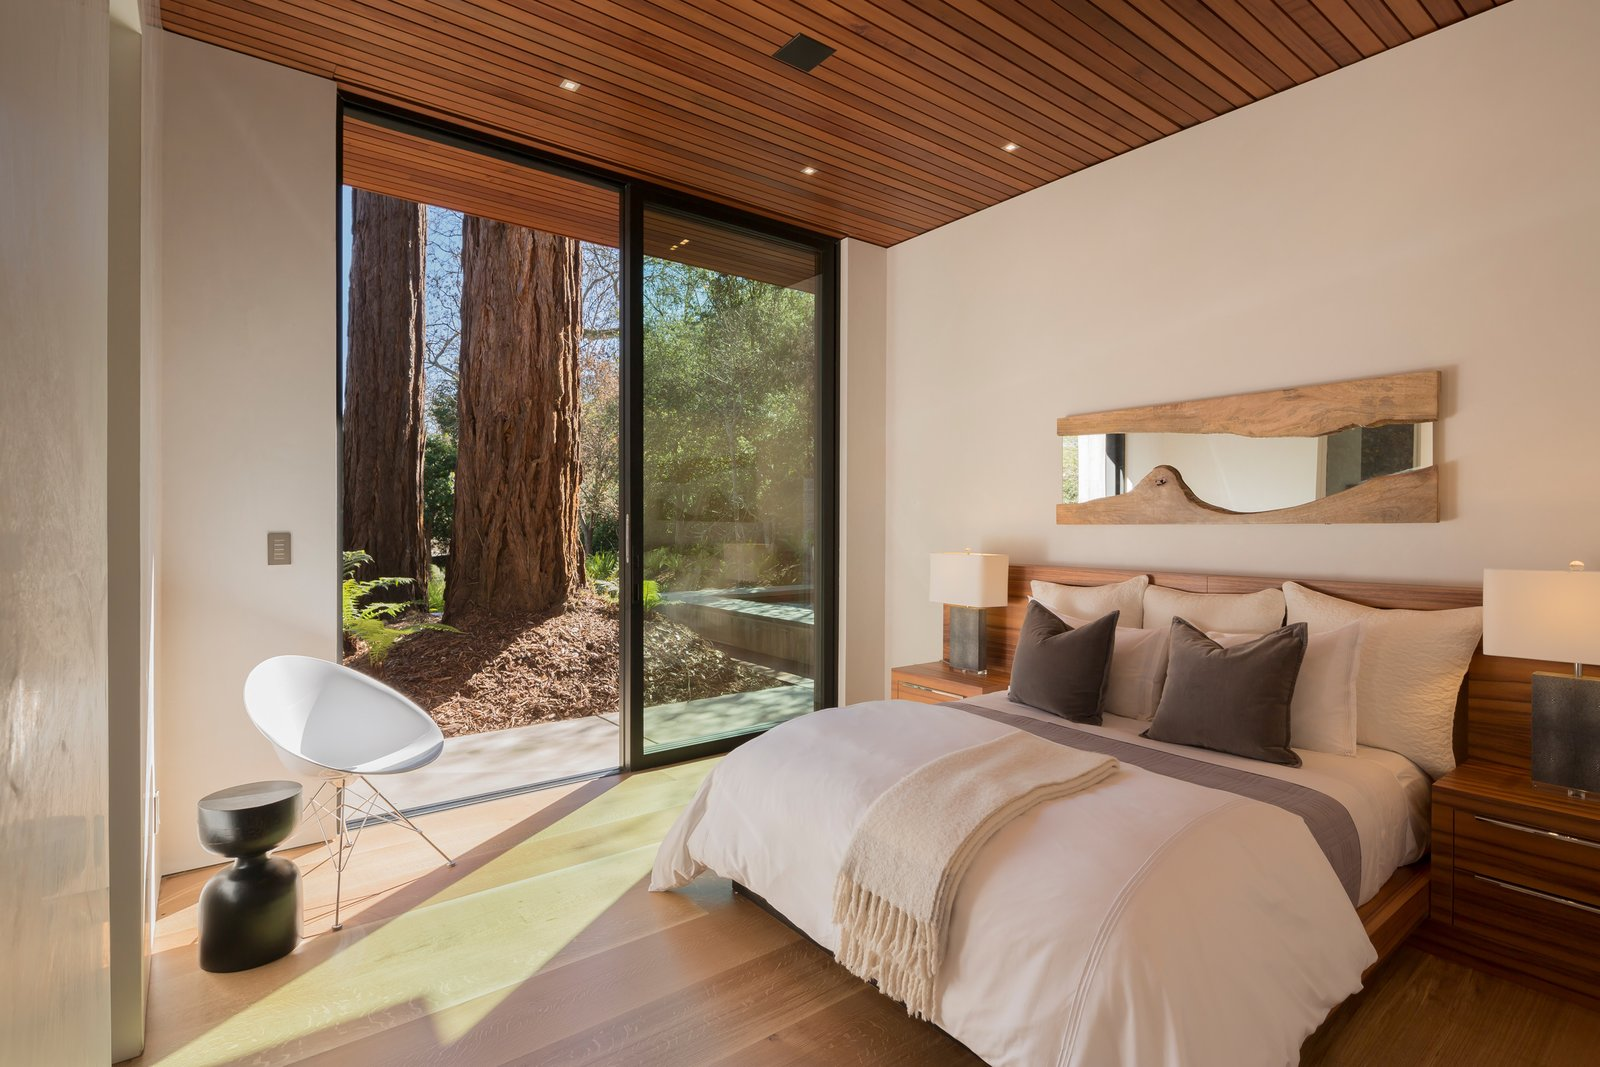 Guest Bedroom - Easy access to spa and lower decks  Ross Modern